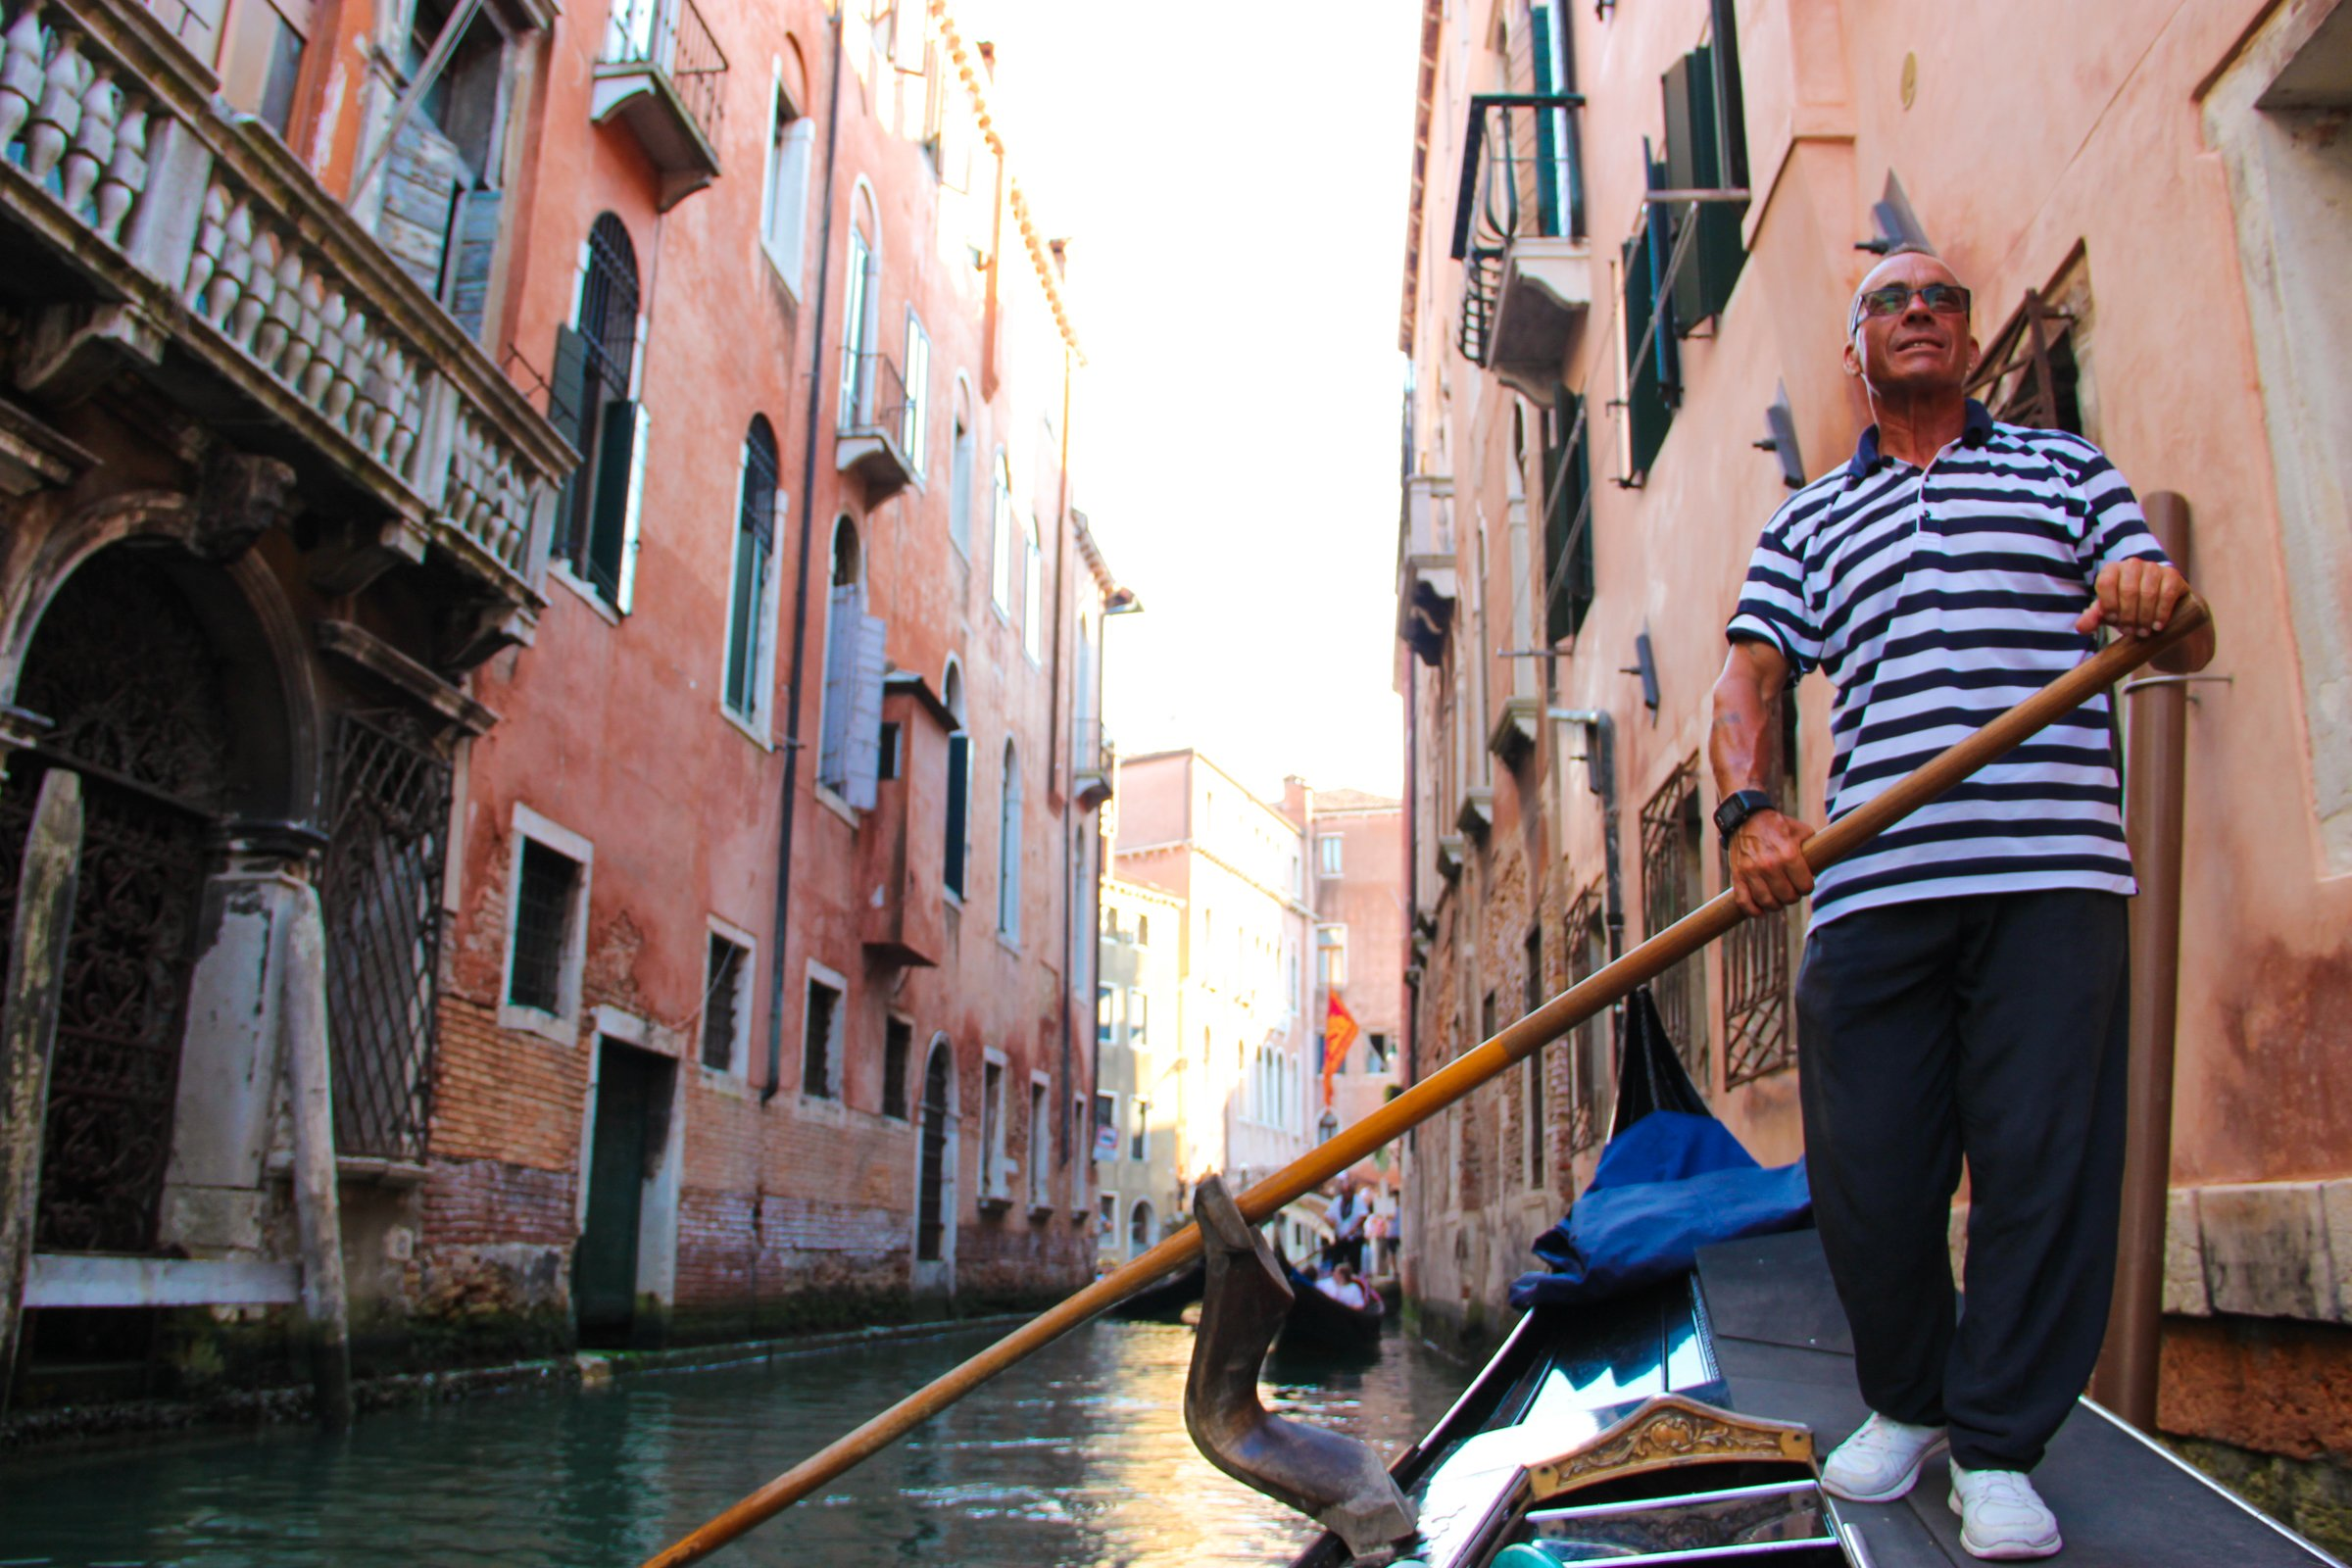 Man Rowing Gondola Through Canals